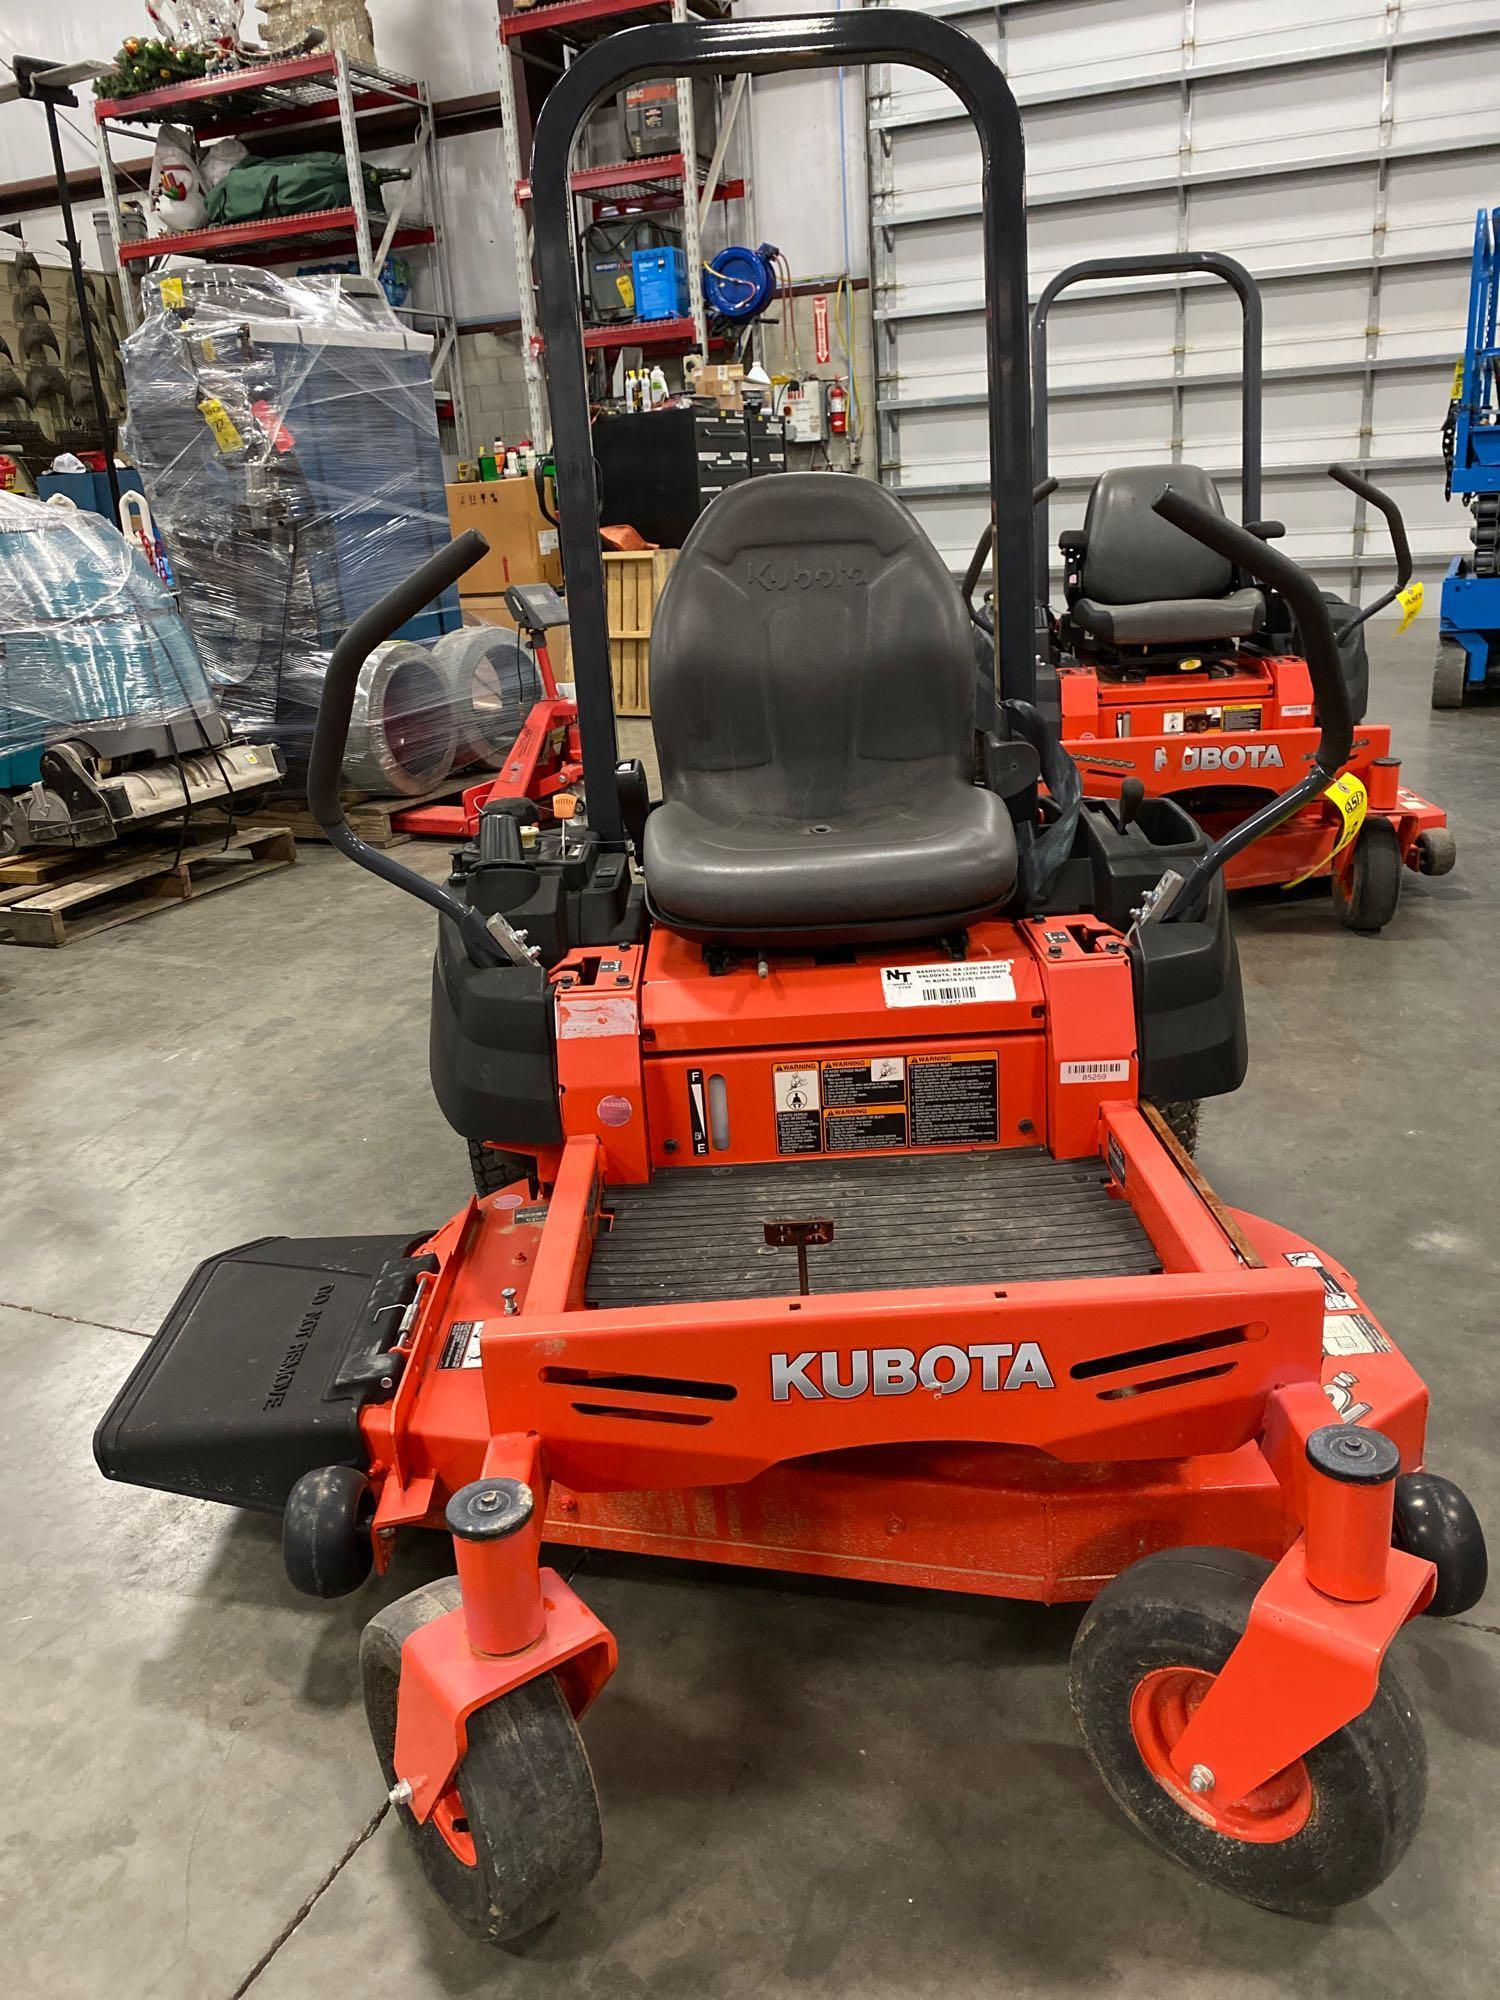 """2016 KUBOTA Z122RKW 42"""" RIDE ON MOWER, 3.9 HOURS SHOWING, RUNS AND OPERATES - Image 2 of 9"""